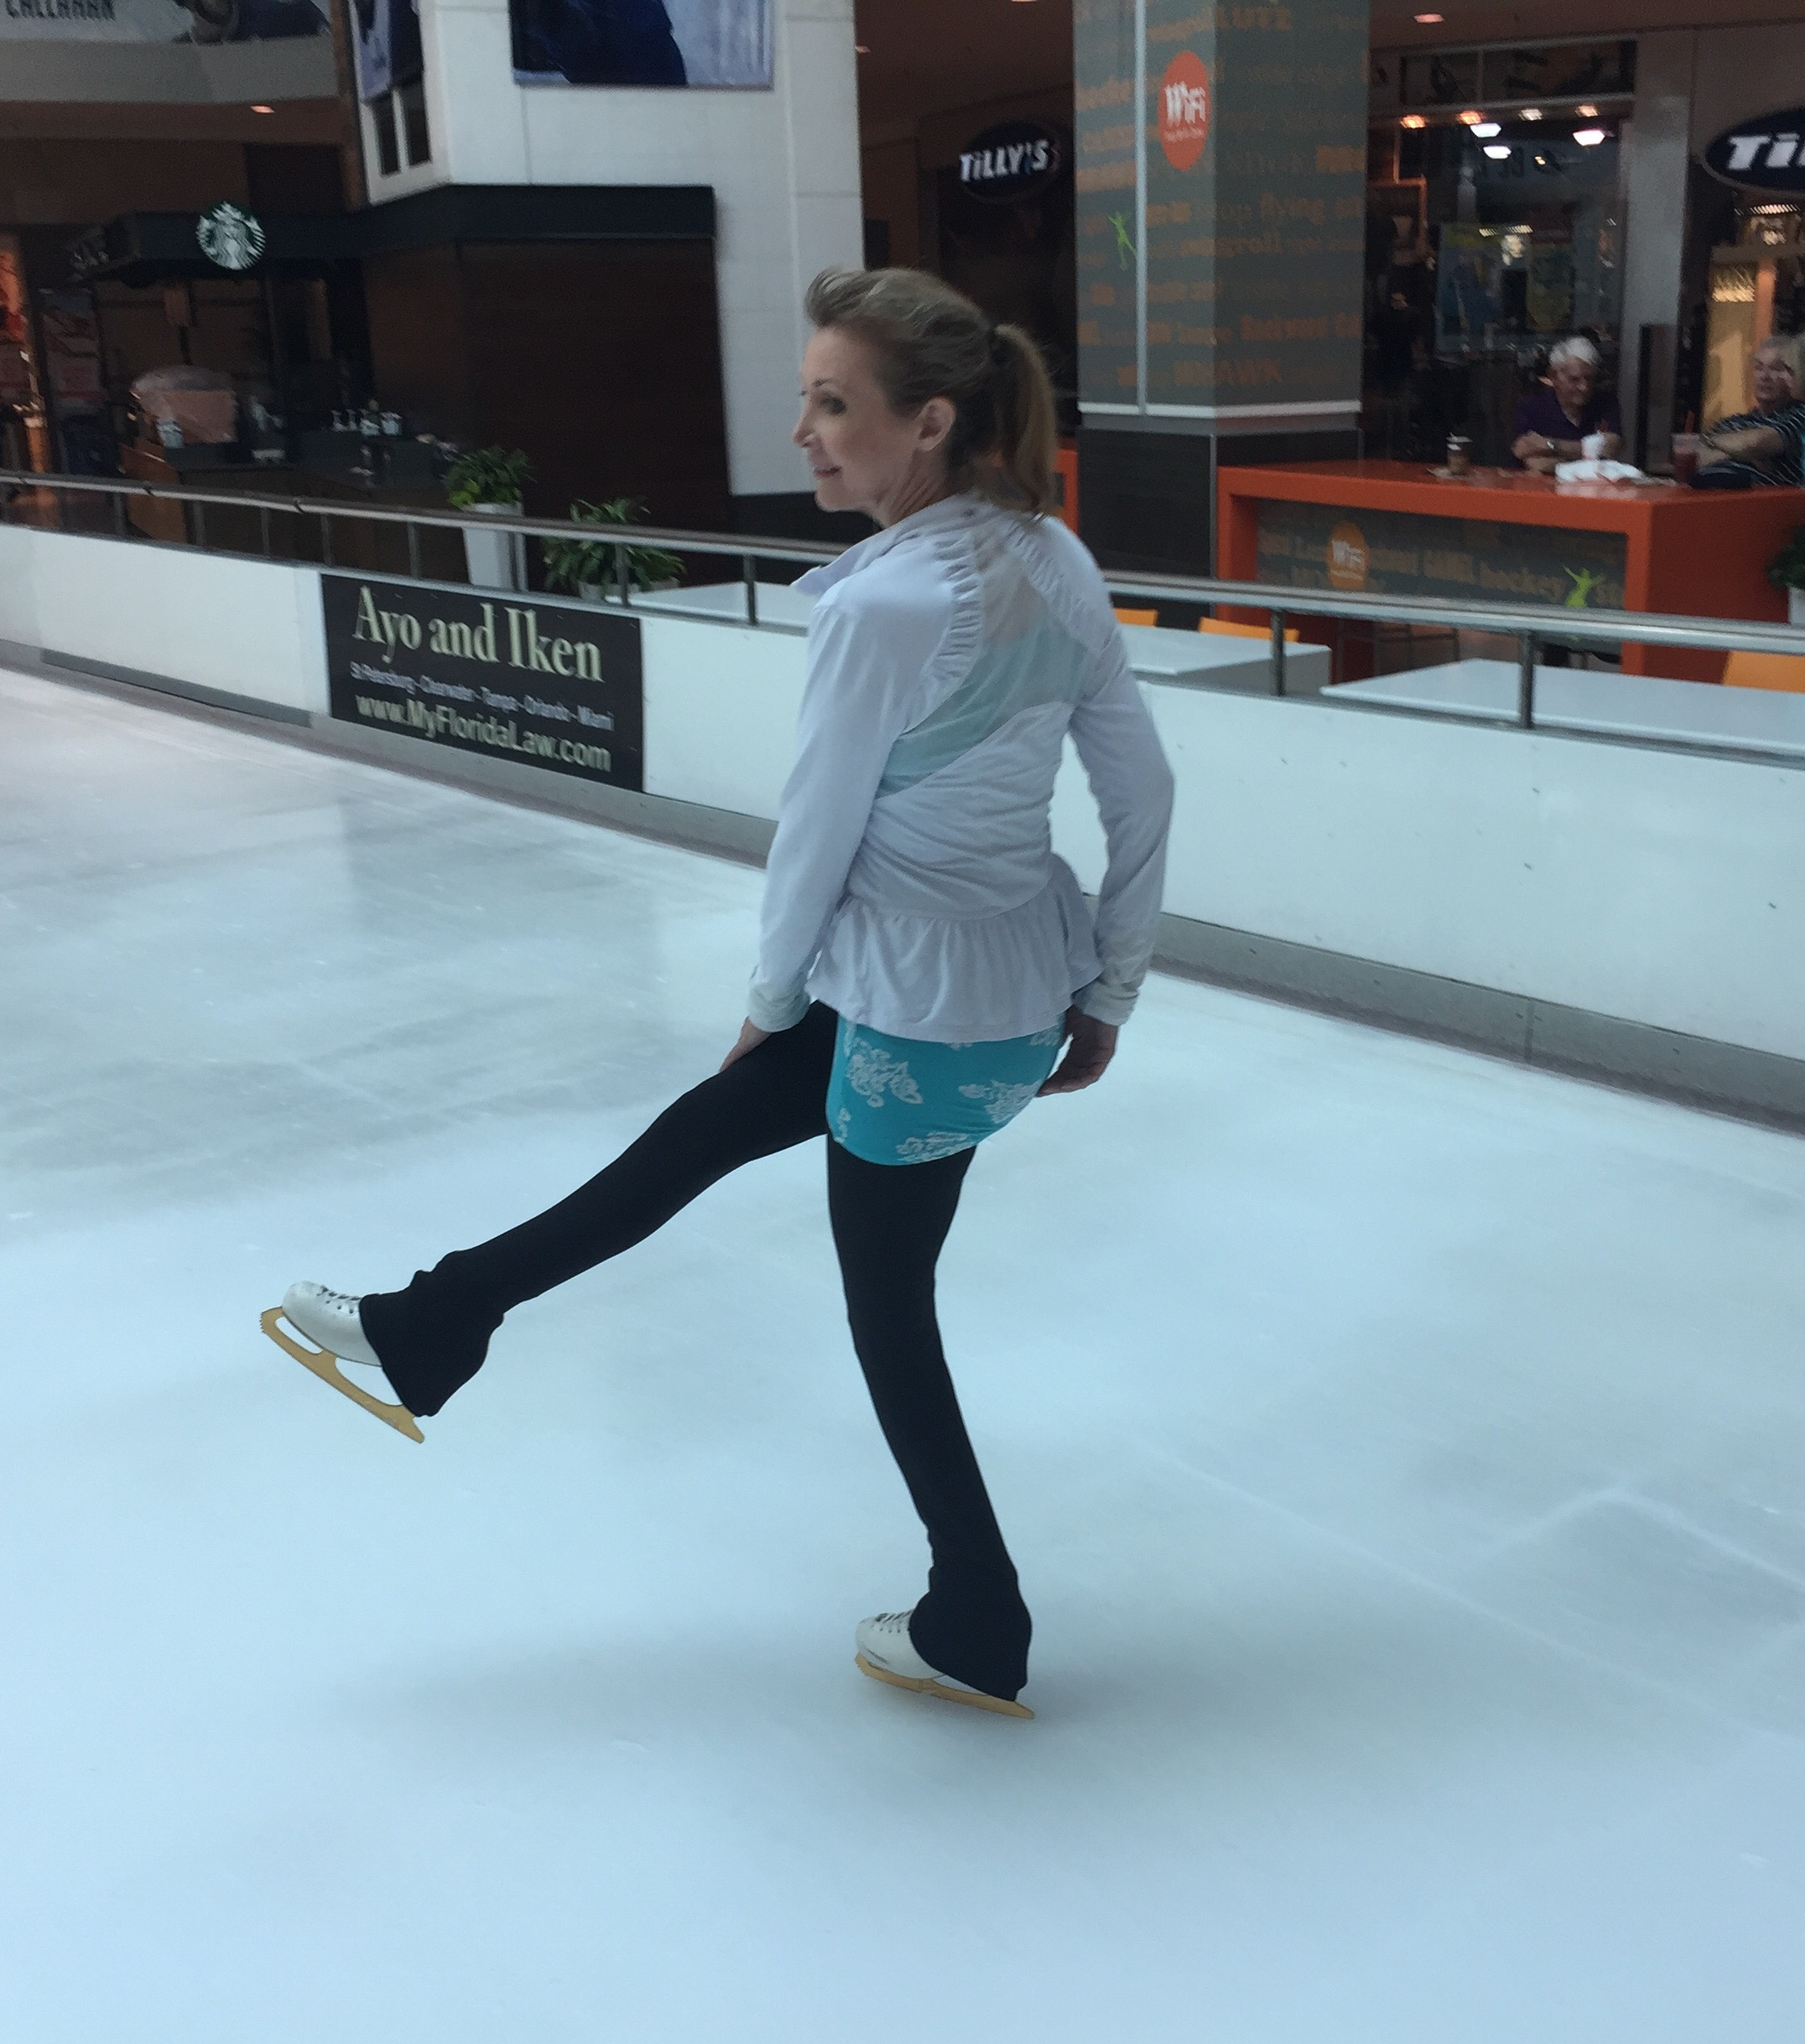 My Skating Outfit